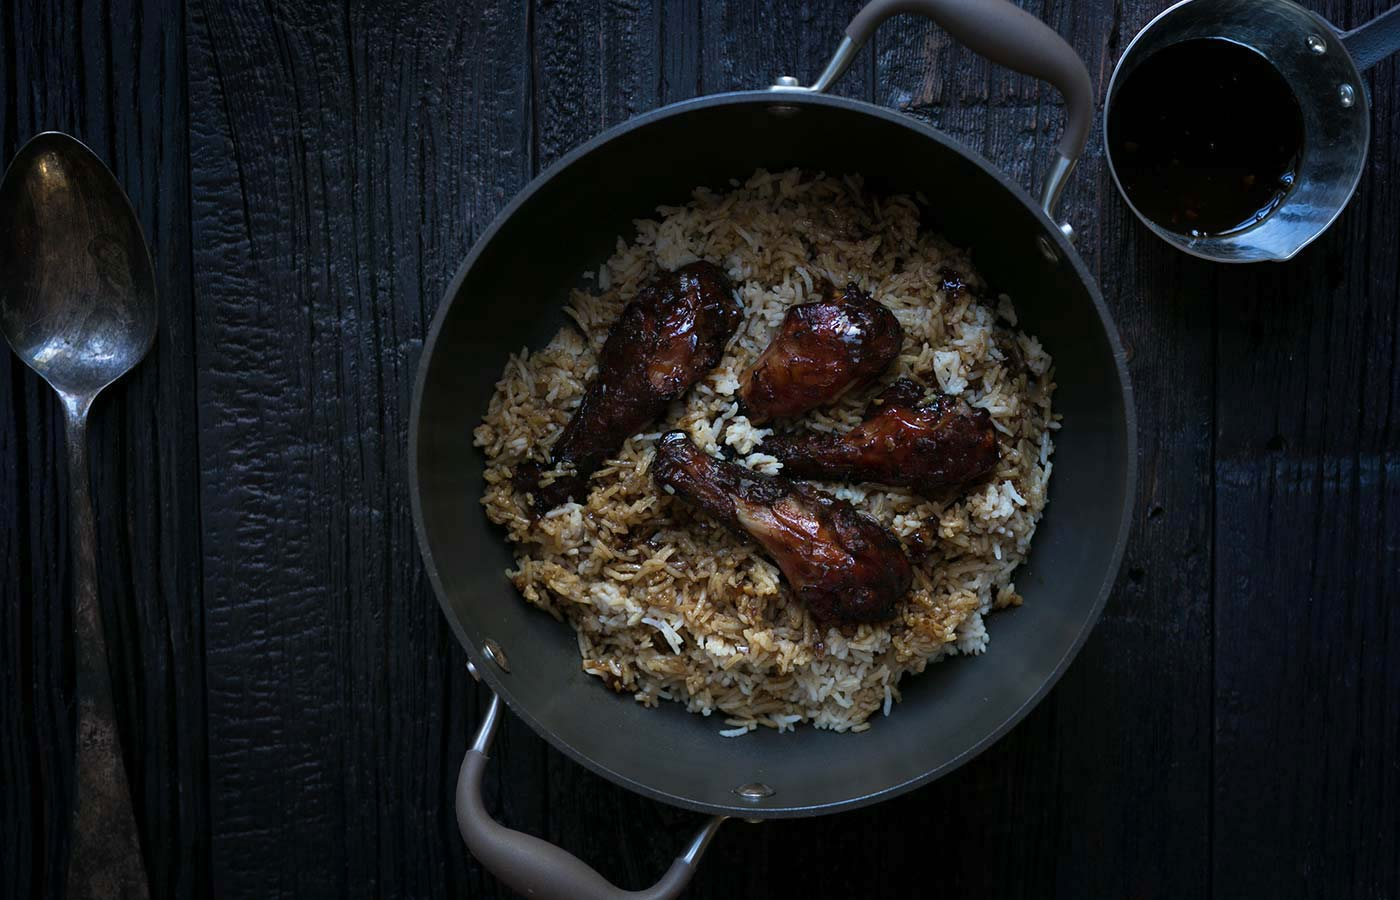 Looking for a flavorful dinner that takes chicken to the next level? You need these Teriyaki Drumsticks with Umami Rice from the Adventures in Chicken cookbook! SavorySimple.net